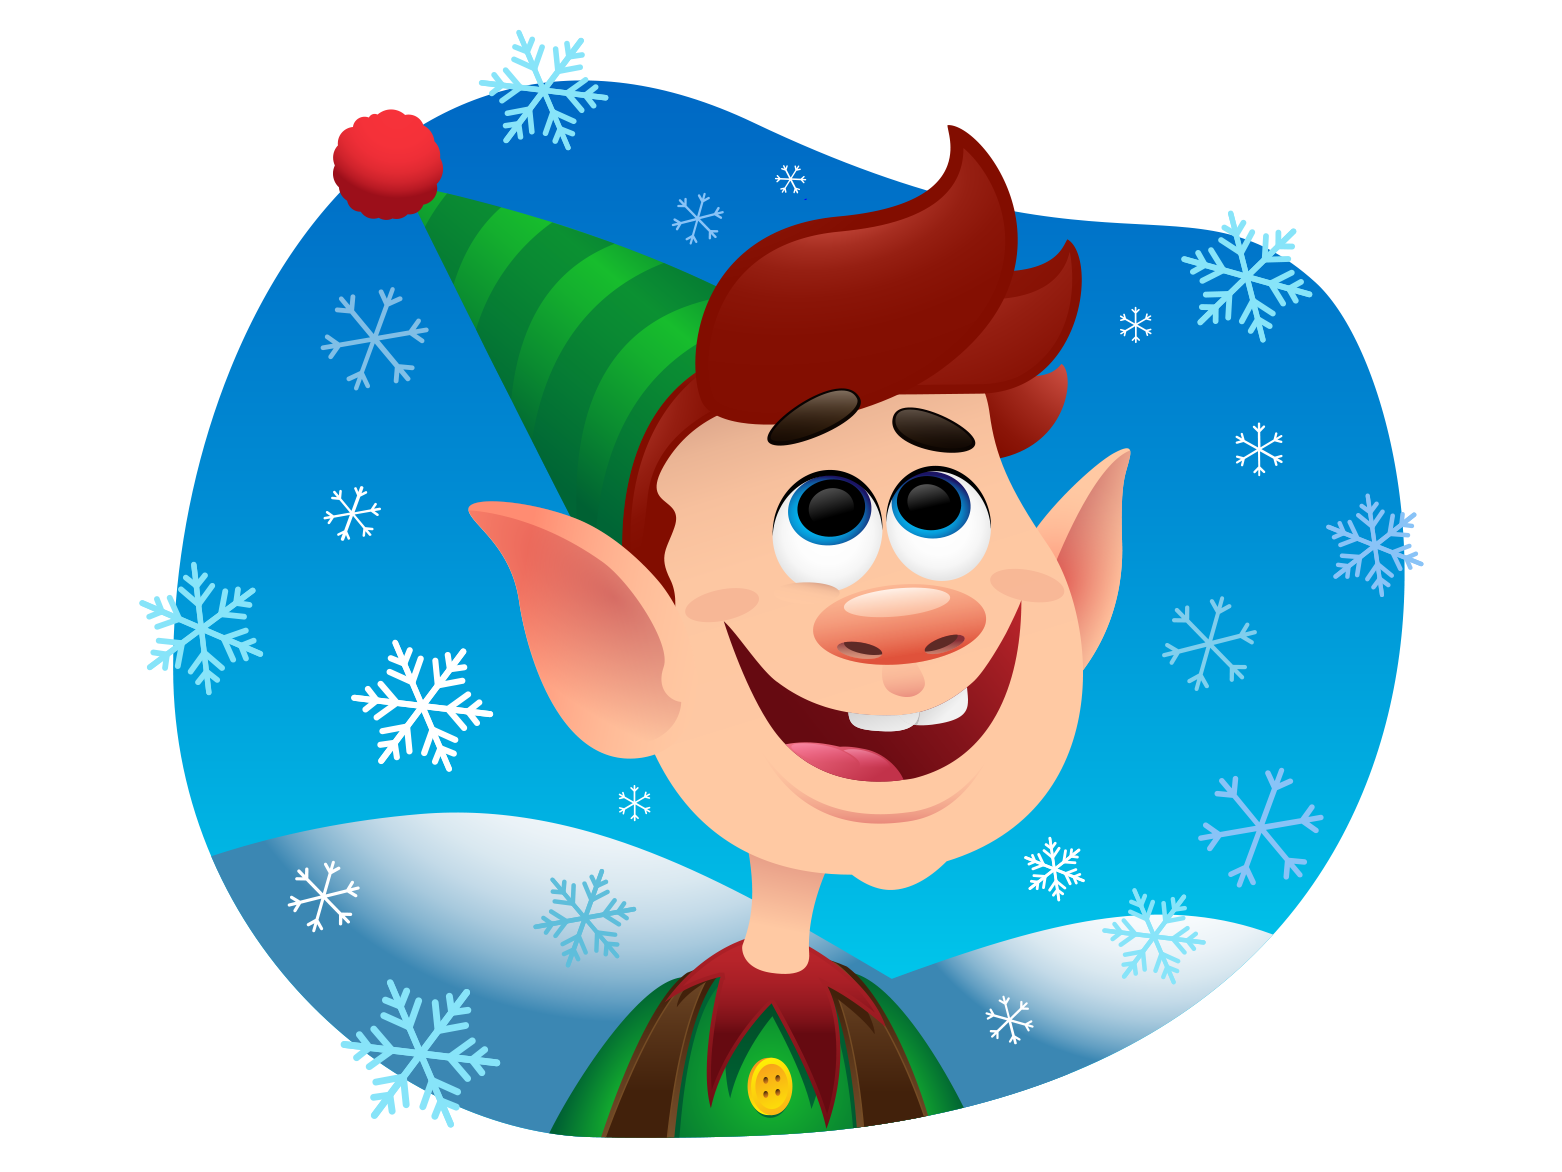 Elf clipart adorable. Christmas by ziv ariely